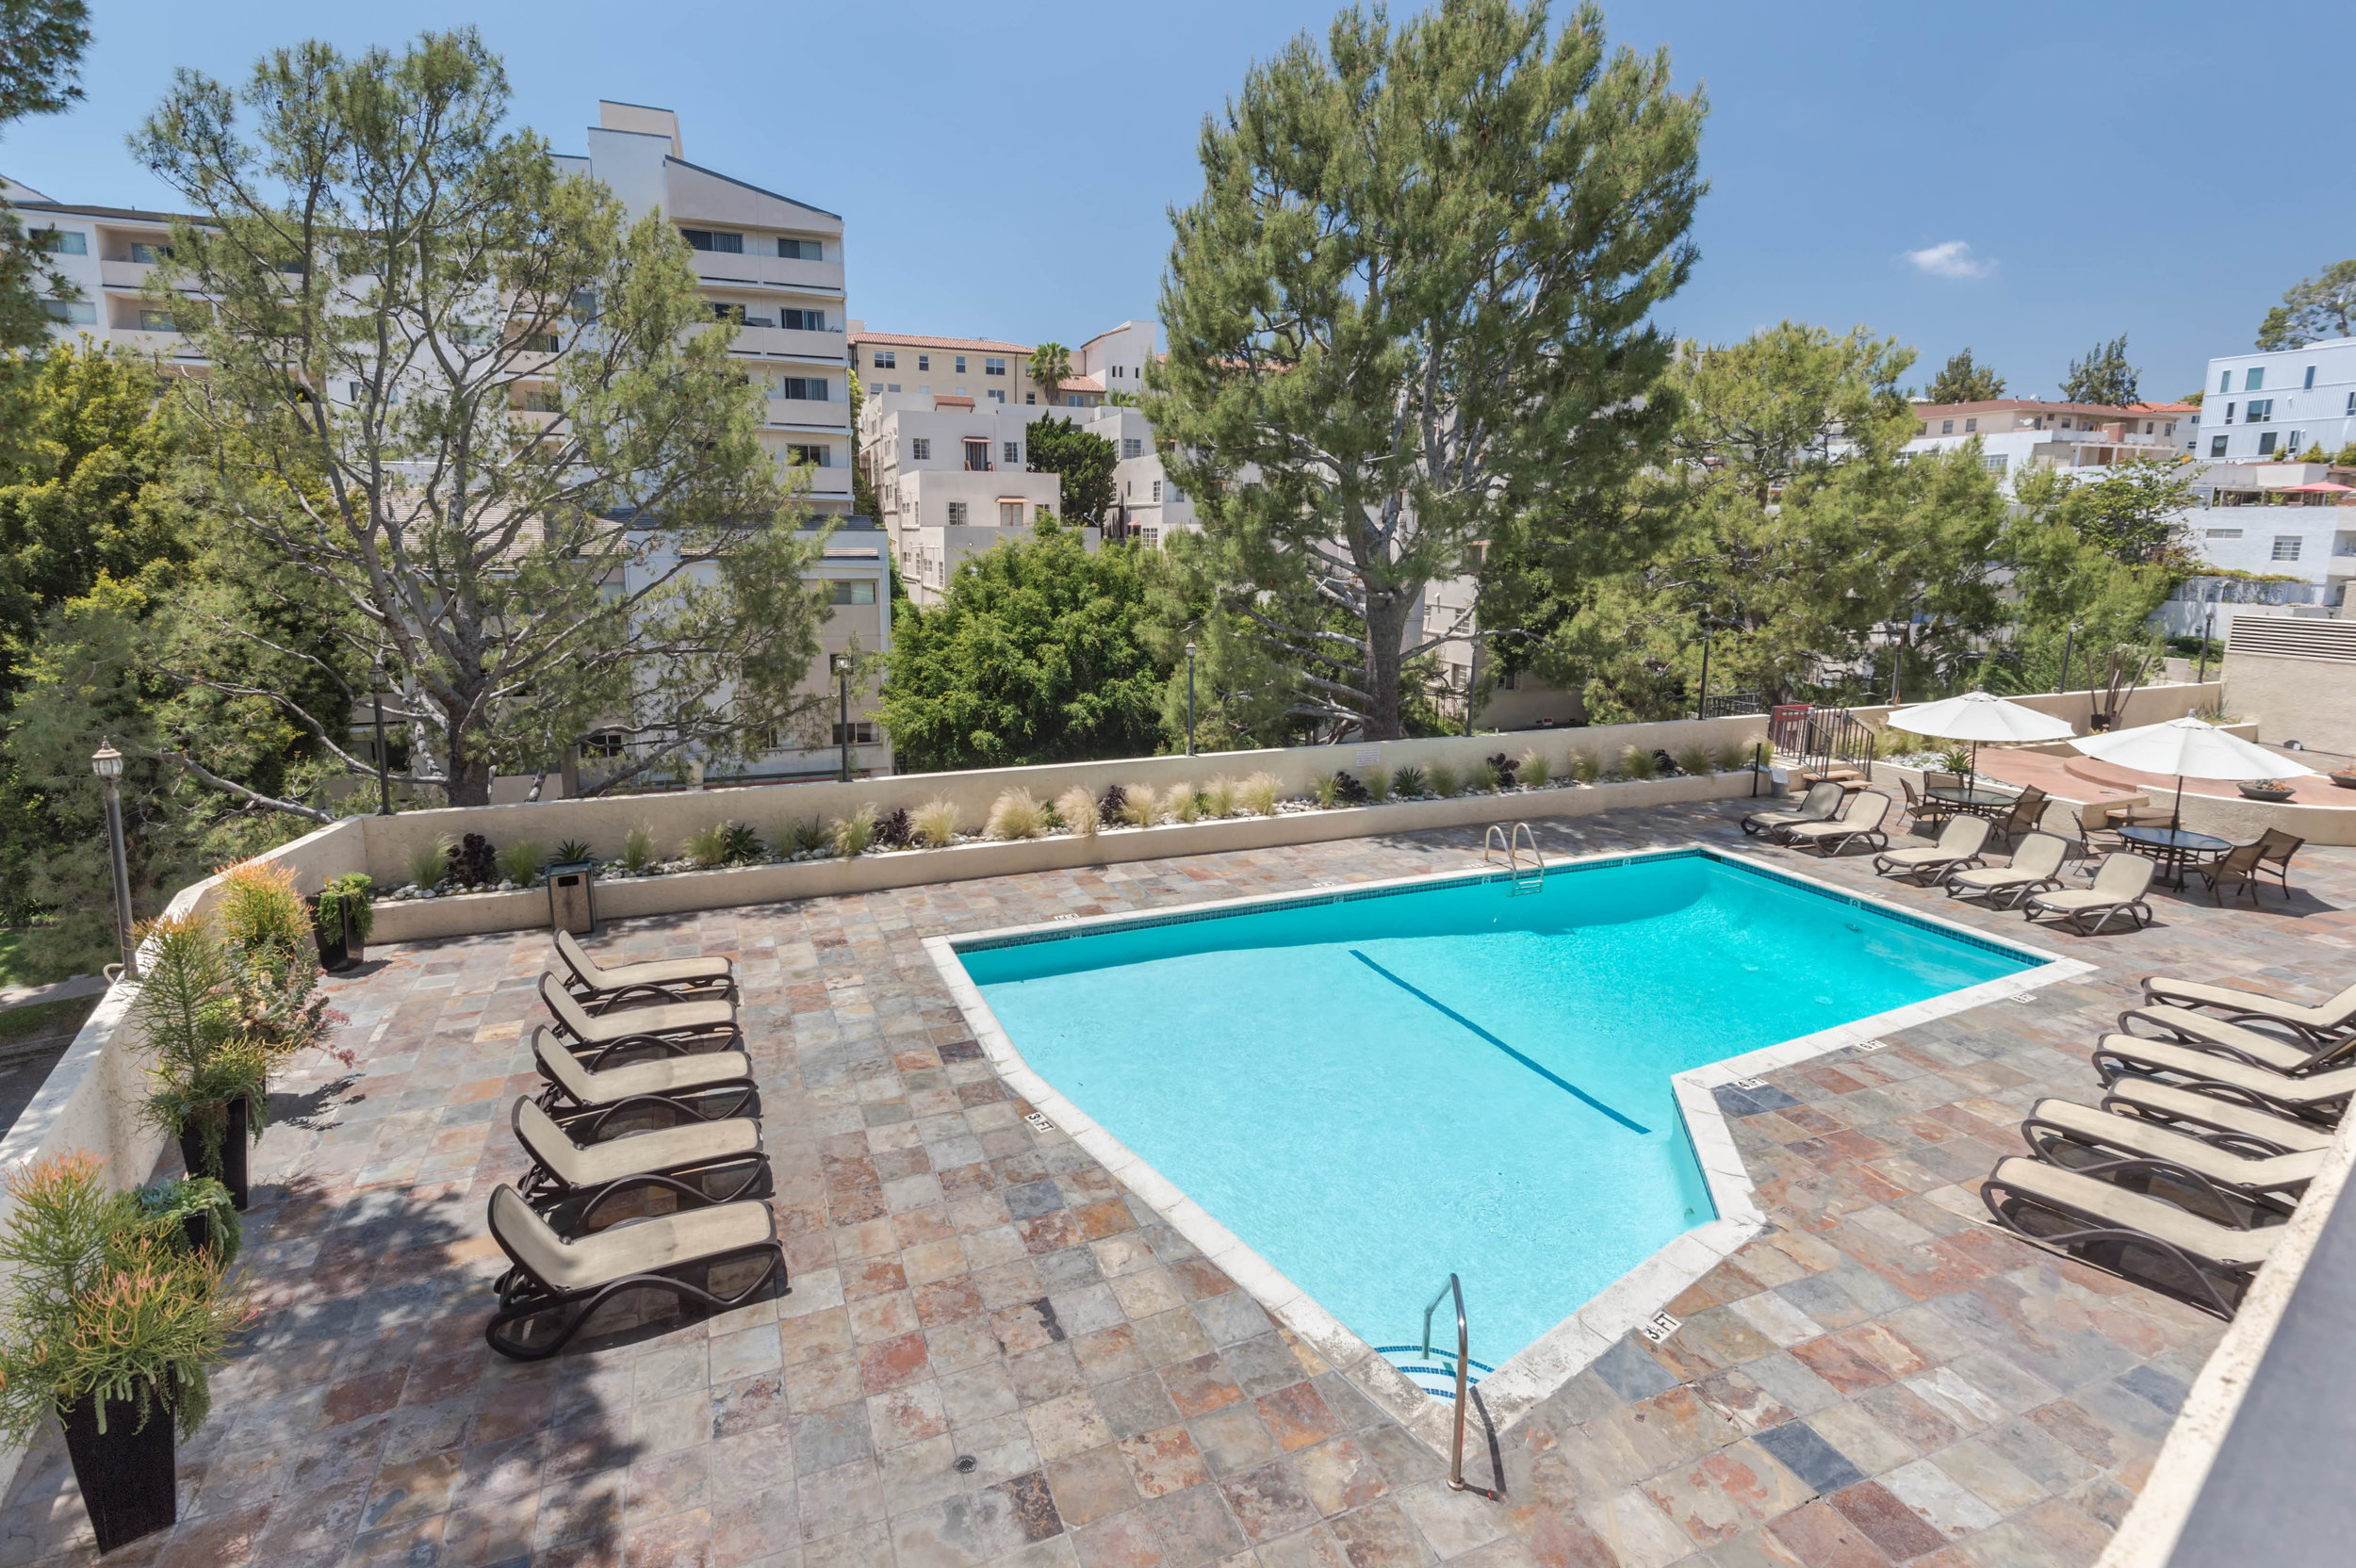 012 Pool 10982 Roebling Avenue #342 For Sale Lease The Malibu Life Team Luxury Real Estate.jpg